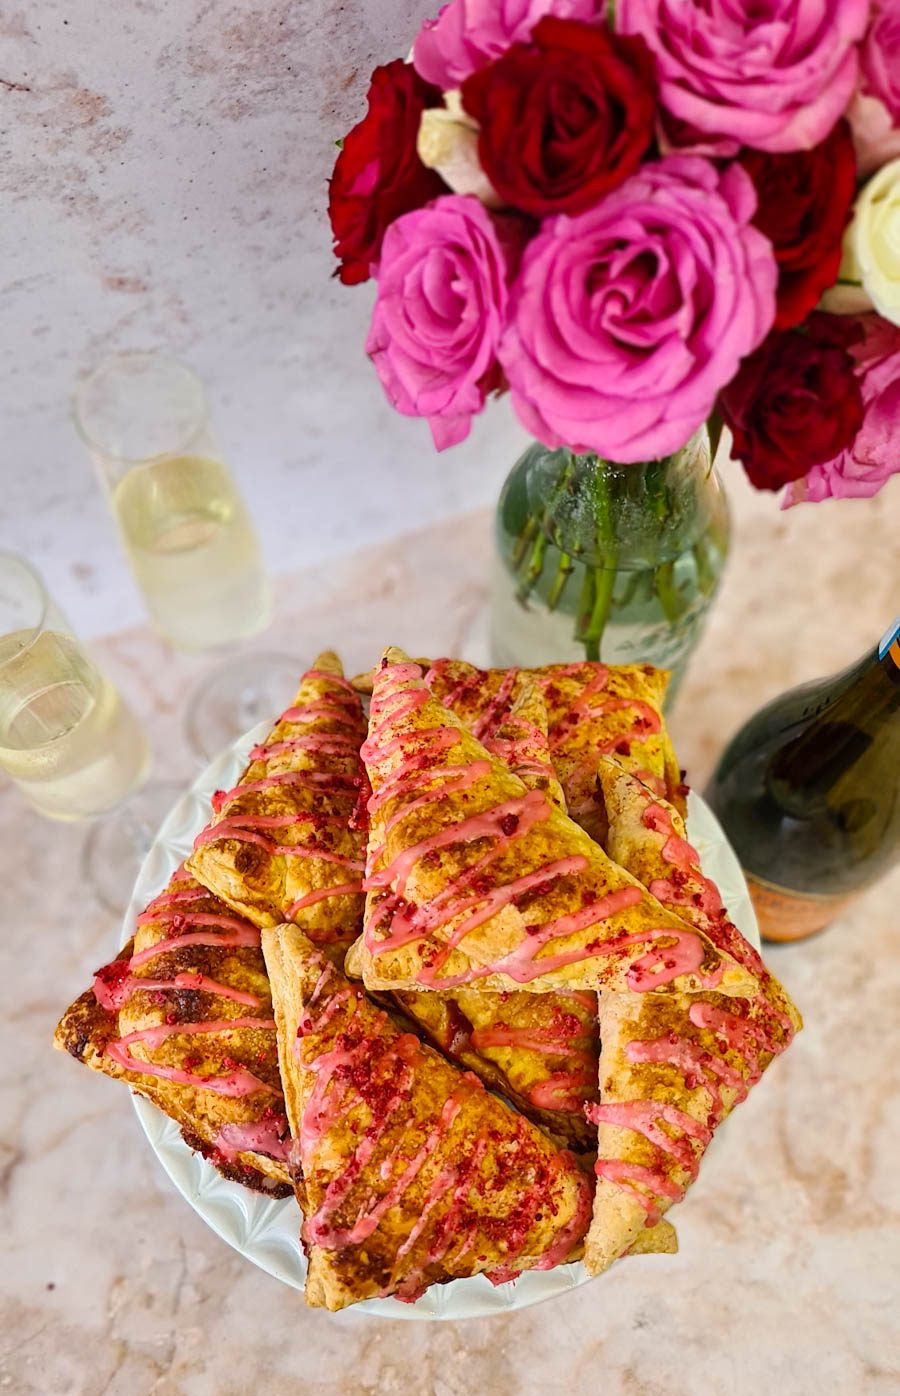 Apricot, Raspberry & Prosecco Turnovers with Rose water Icing